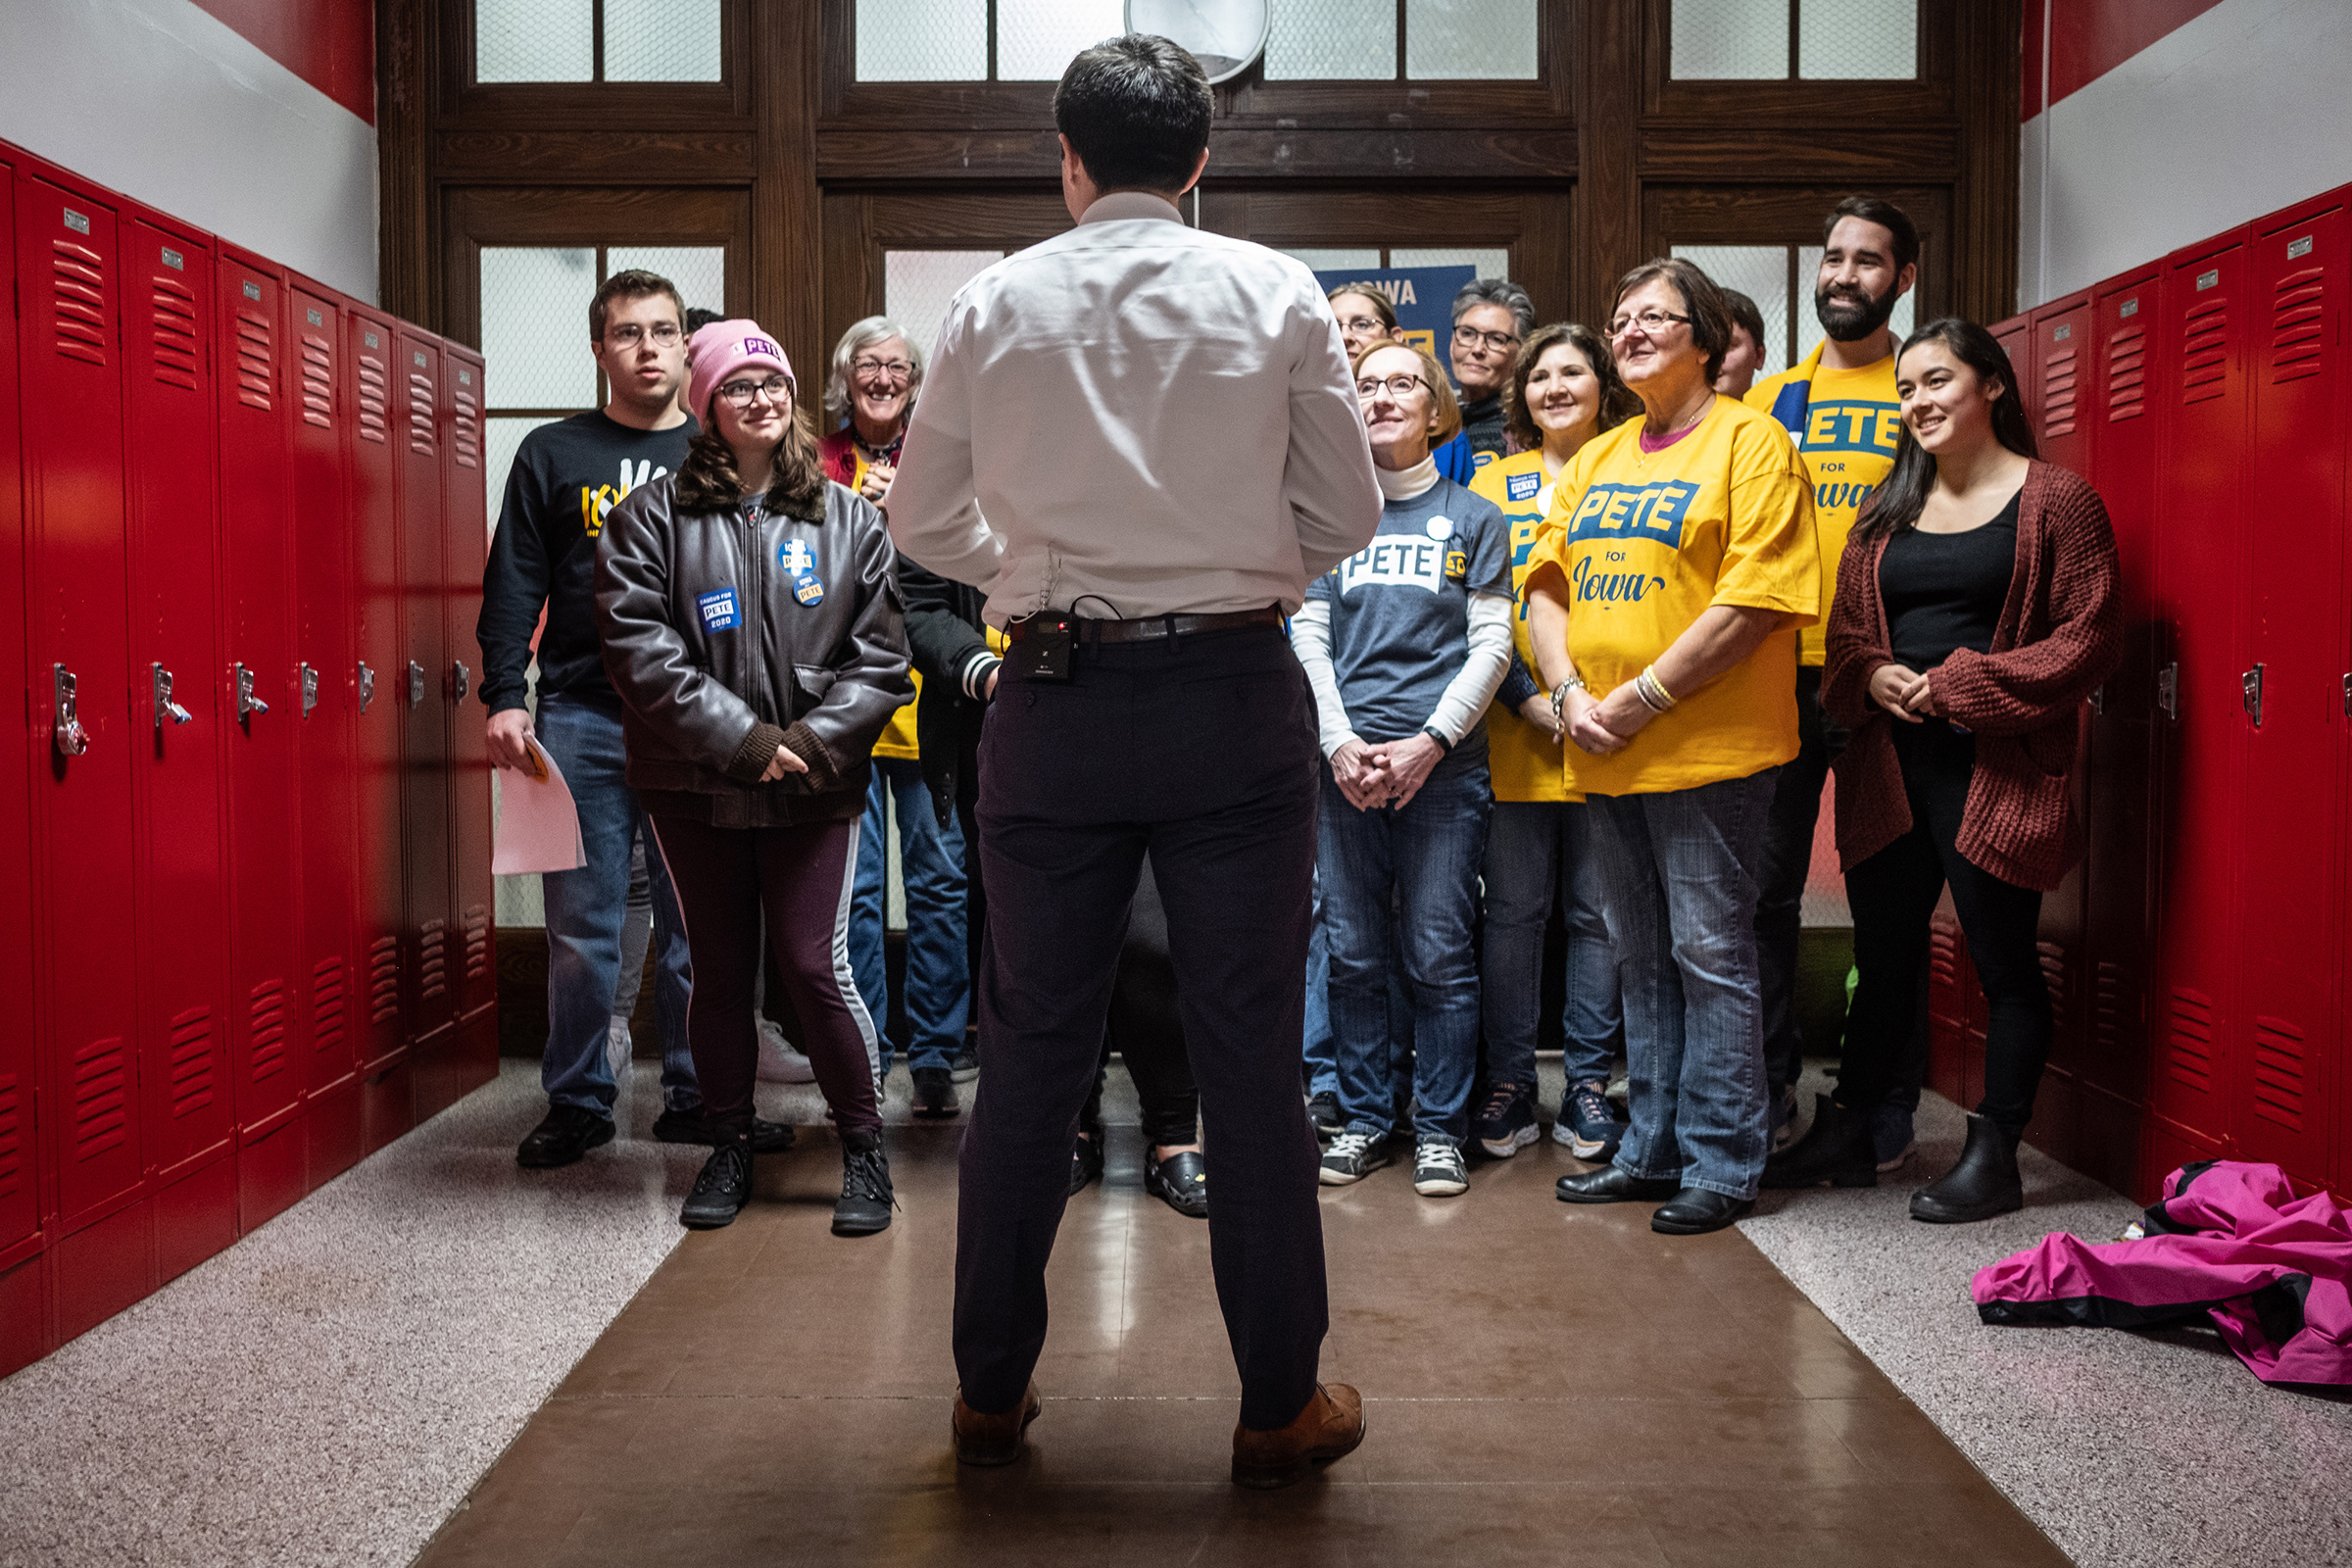 Mayor Pete Buttigieg of South Bend, Ind., a Democratic candidate for president, meets with people at Maquoketa Middle School in Maquoketa, Iowa on Monday, Dec. 30, 2019. (Jordan Gale/The New York Times)